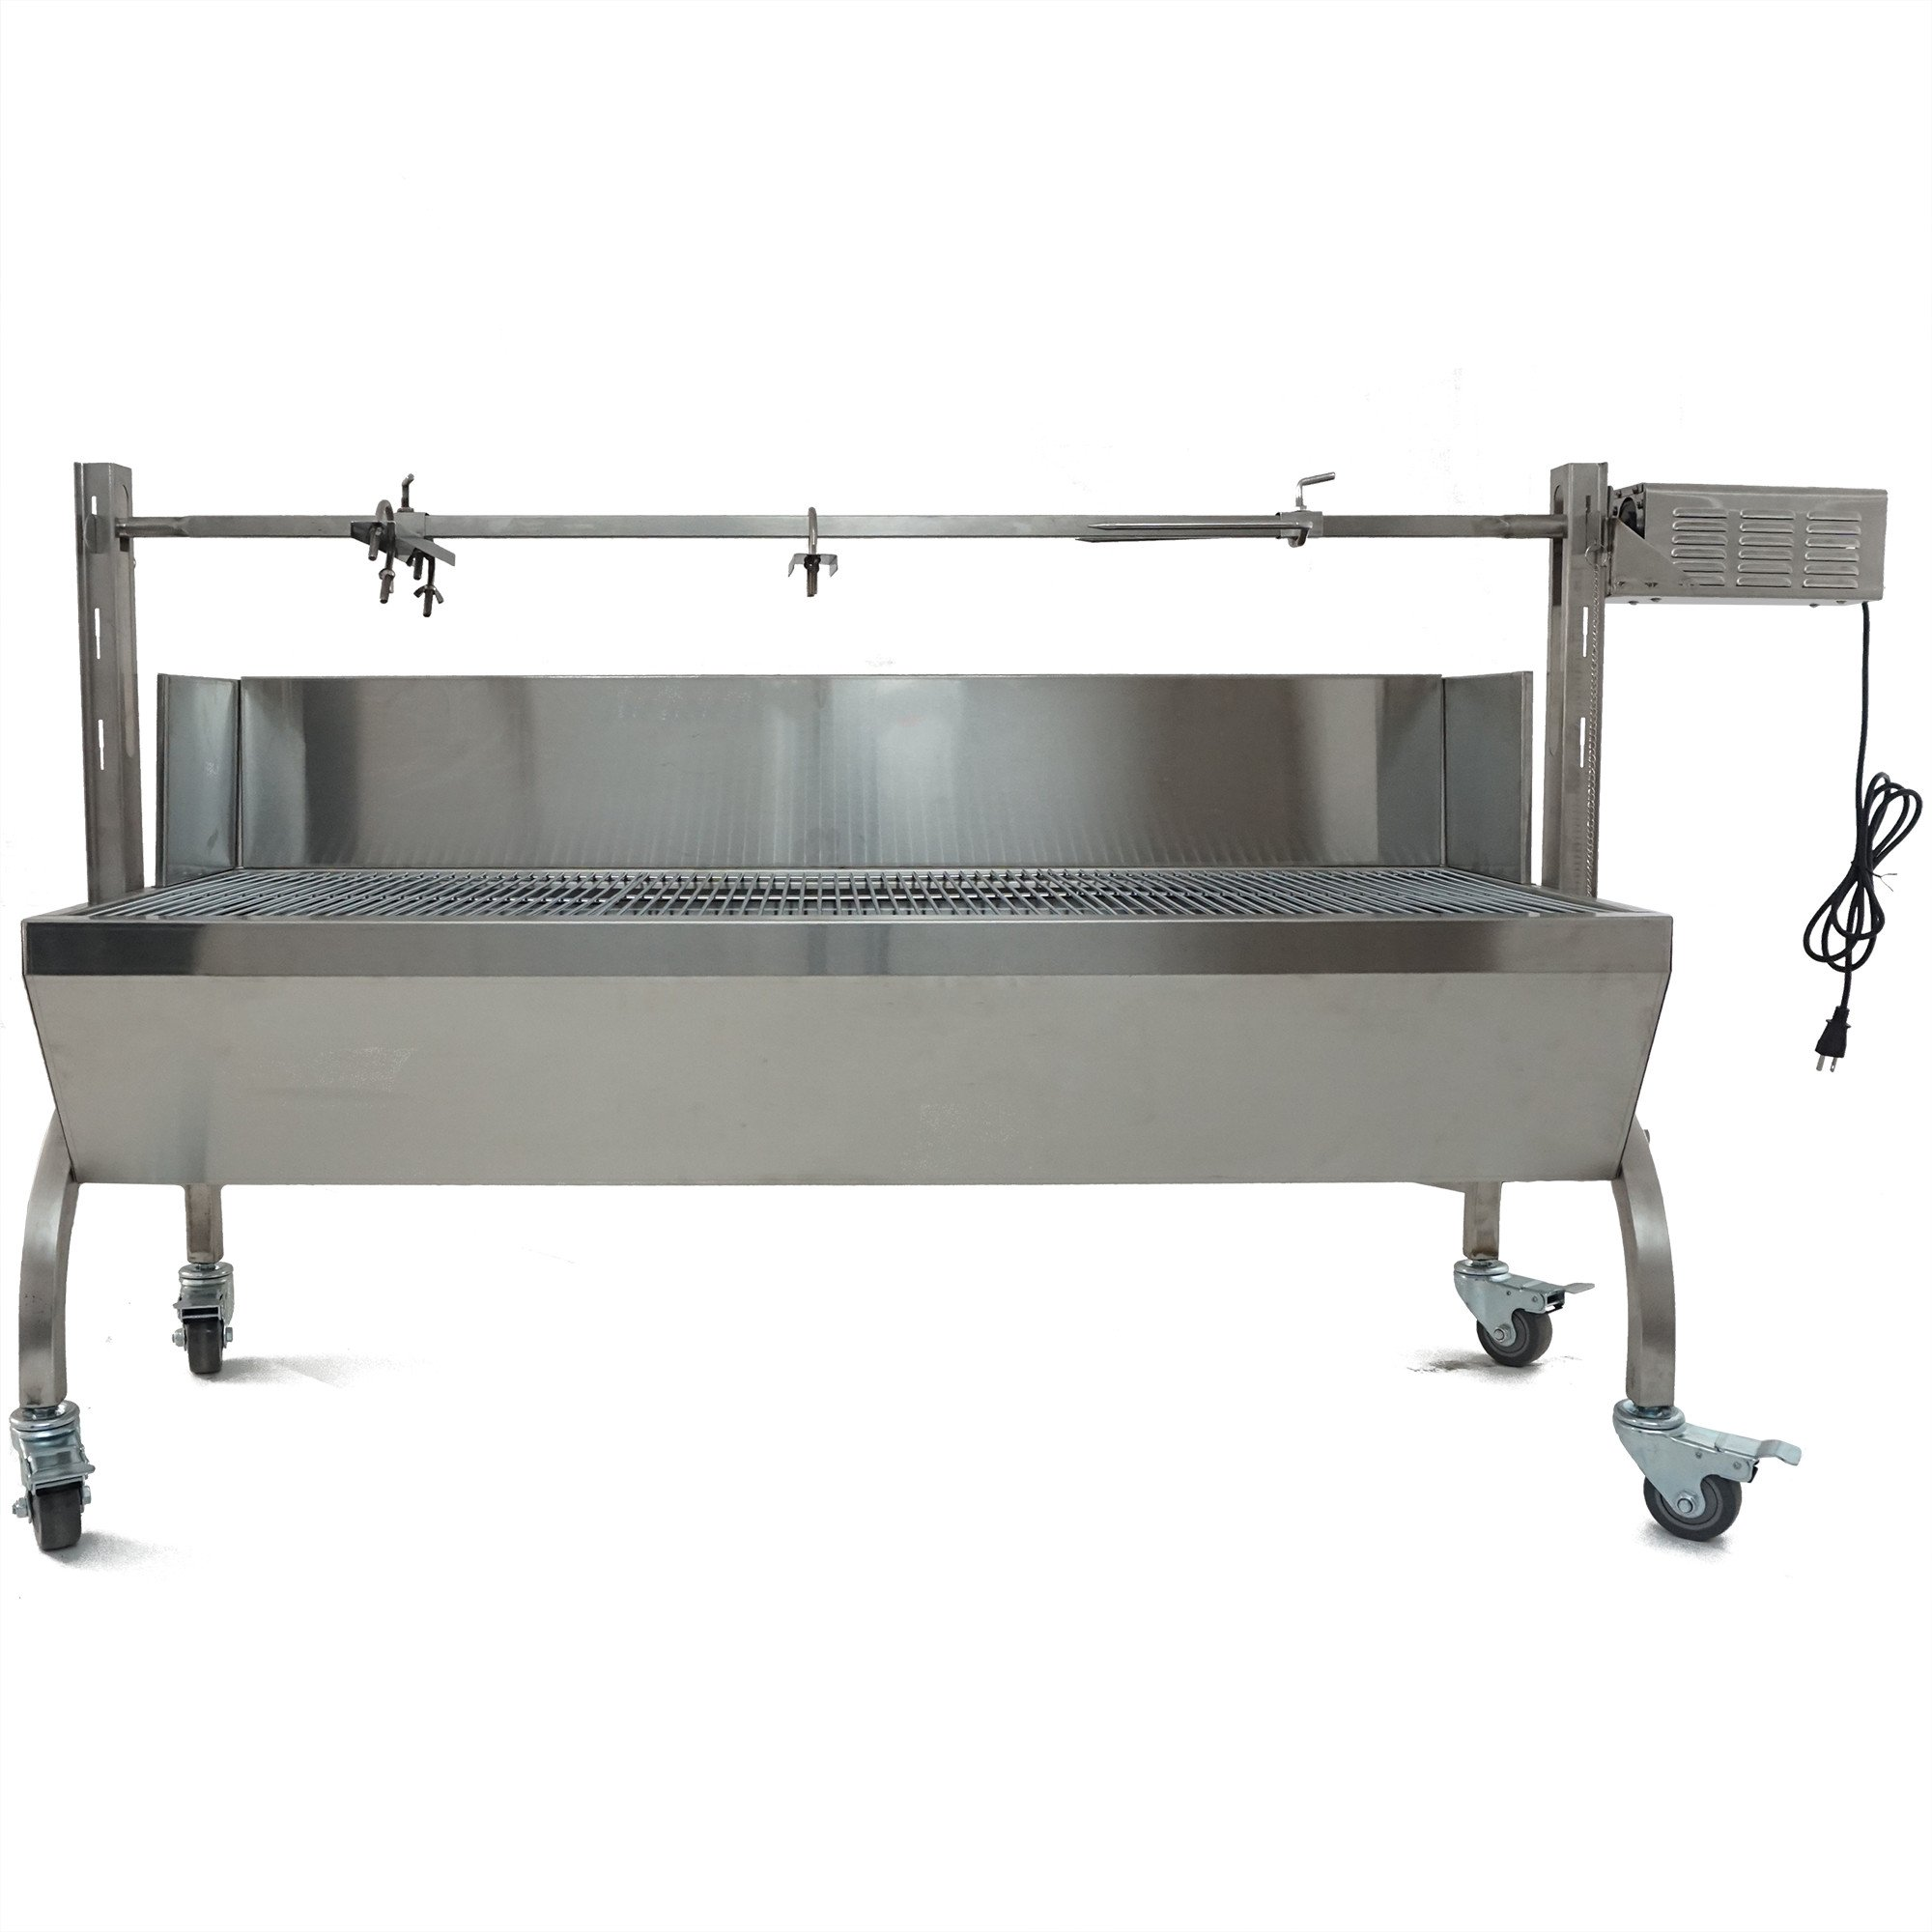 Rotisserie Grill Roaster w/ Windscreen Stainless Steel 25W 125LBS capacity BBQ